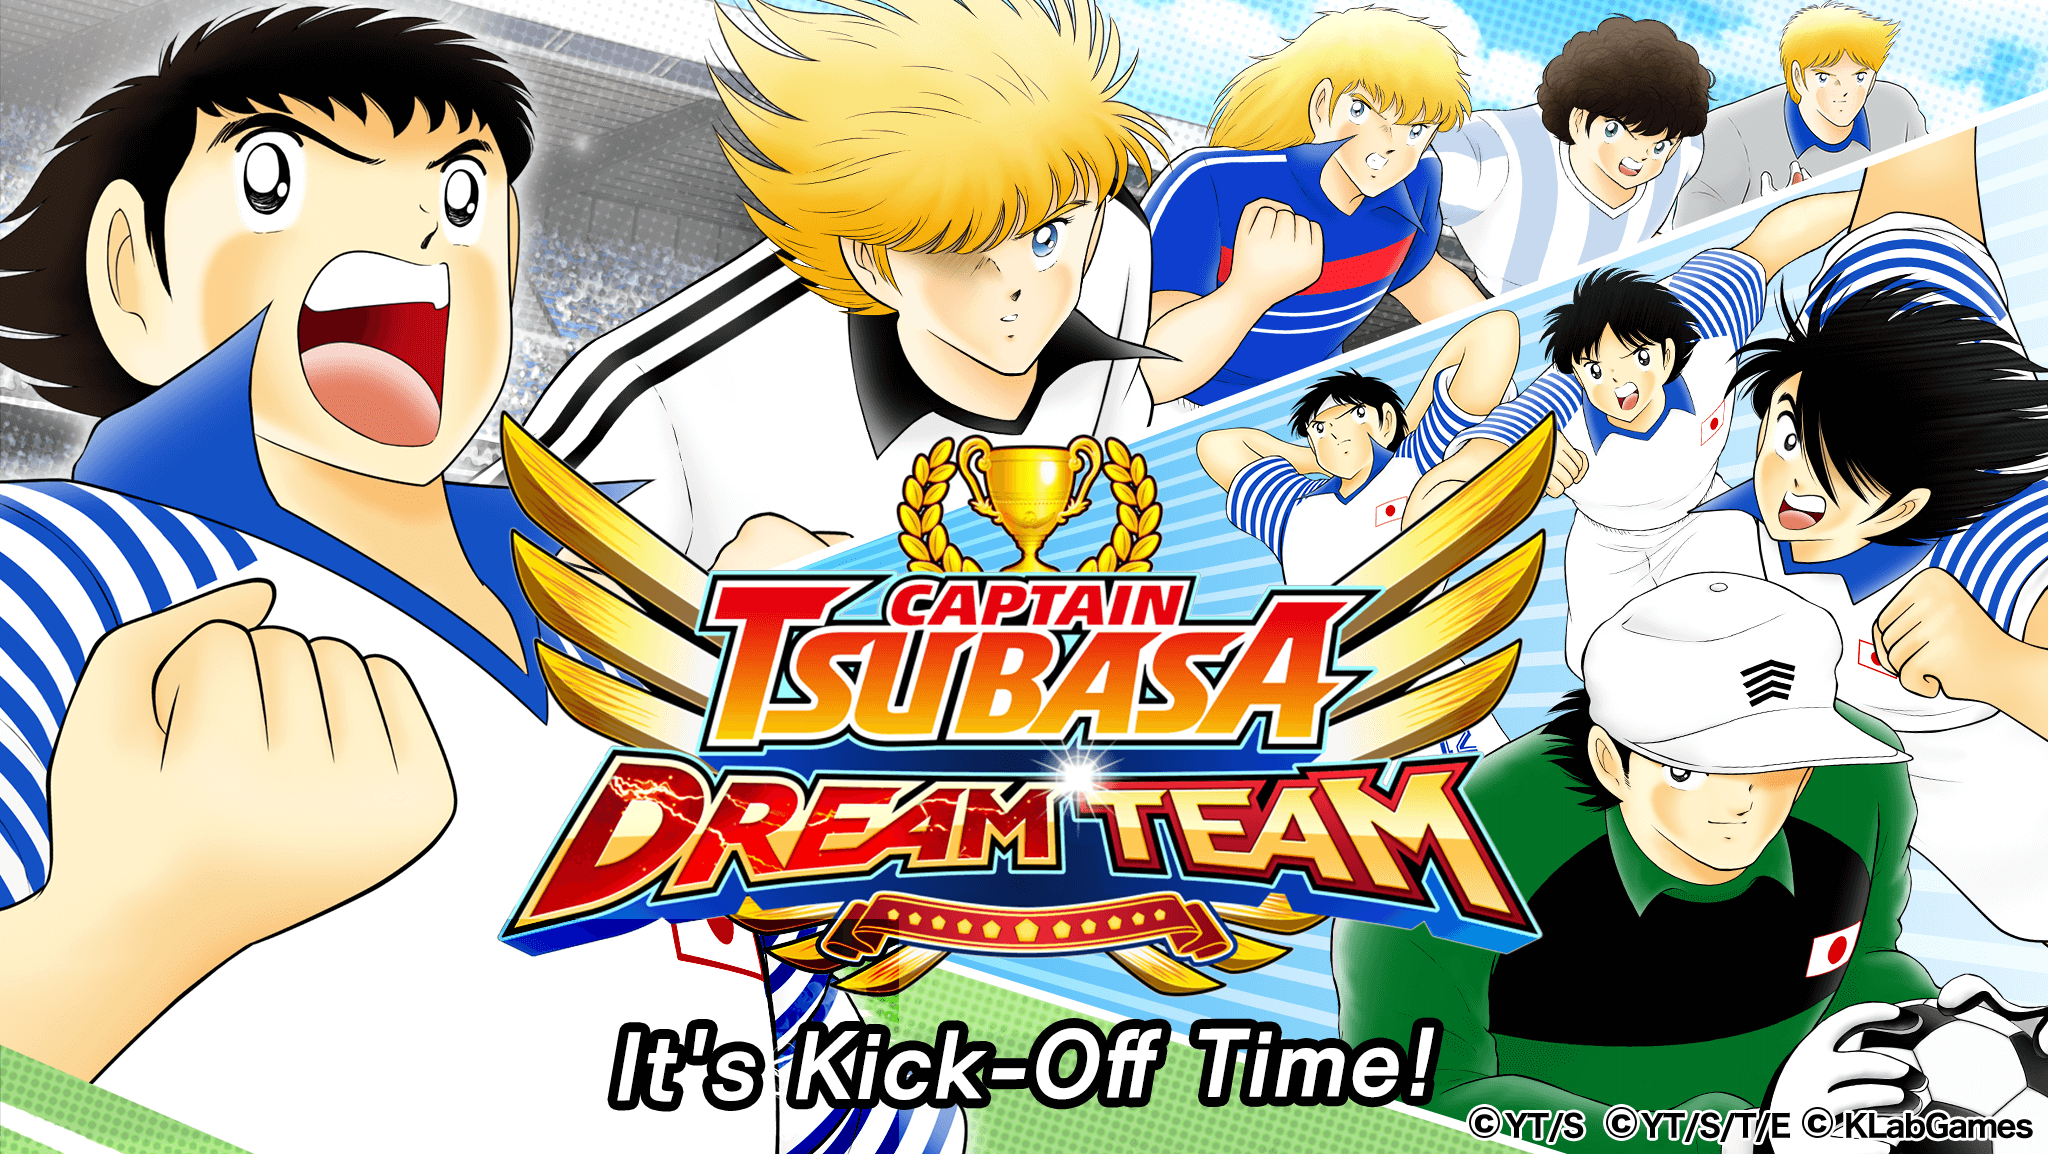 Guide for Captain Tsubasa Game 2020 - Apps on Google Play